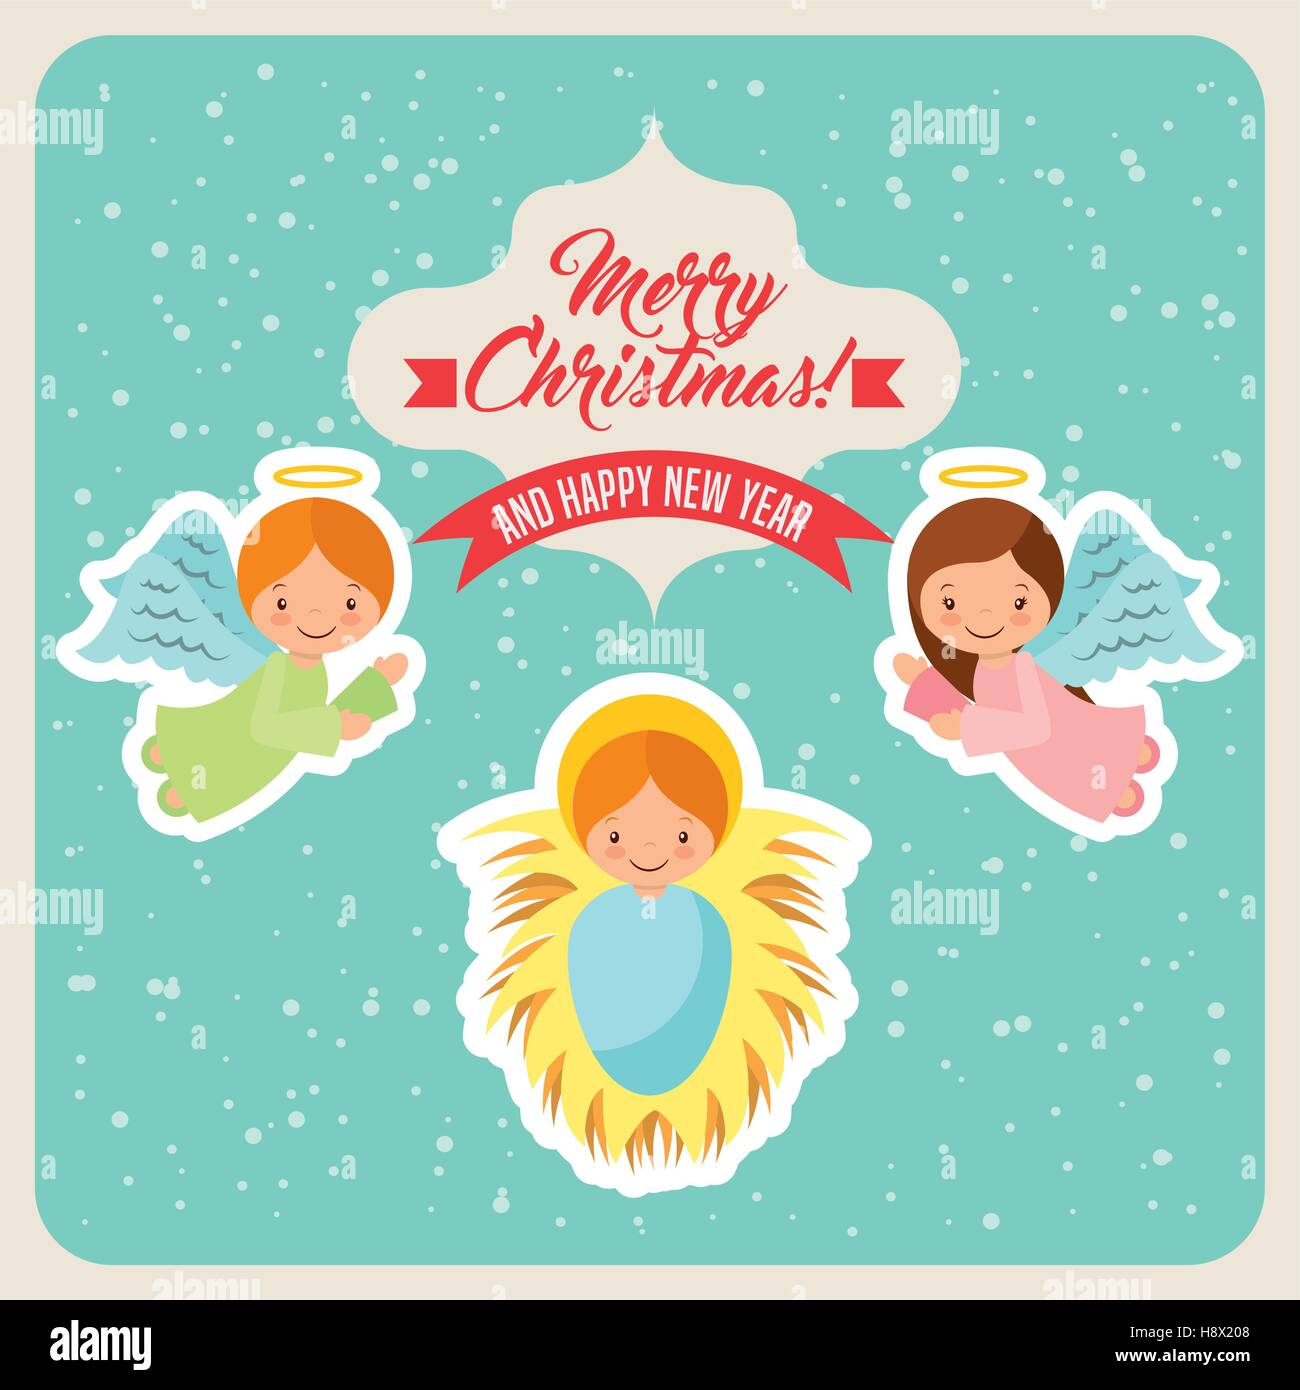 cartoon cute angels and baby jesus icon card of merry christmas and happy new year design vector illustration